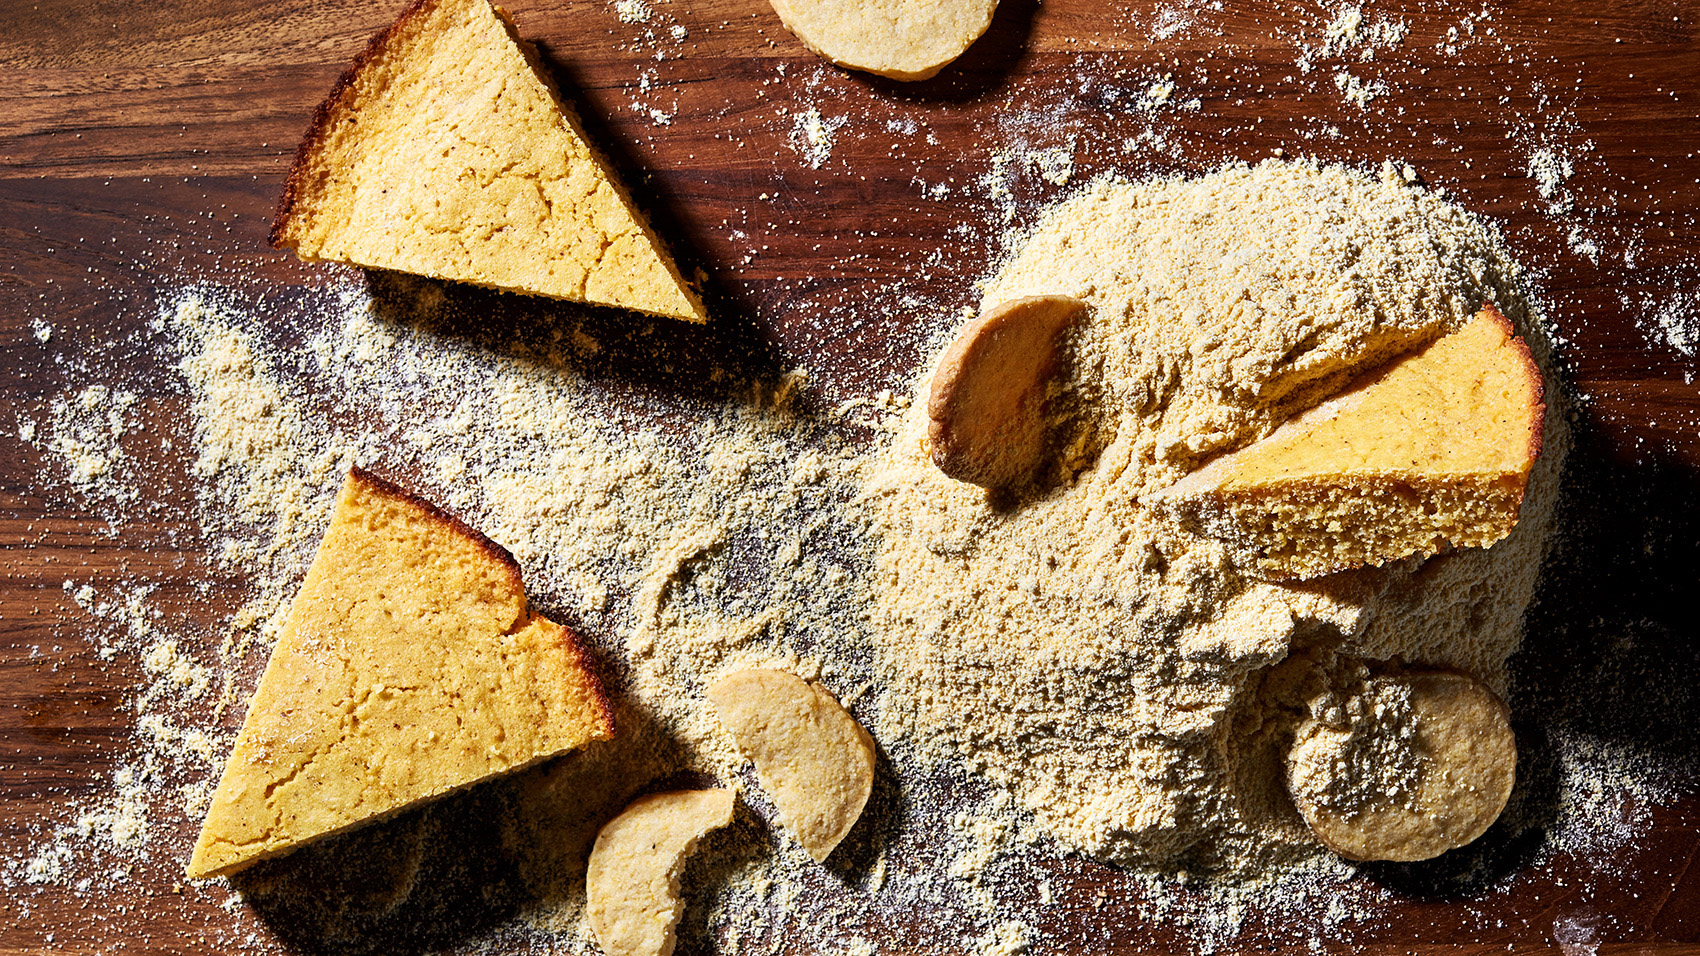 Cornmeal has a multicultural history in America